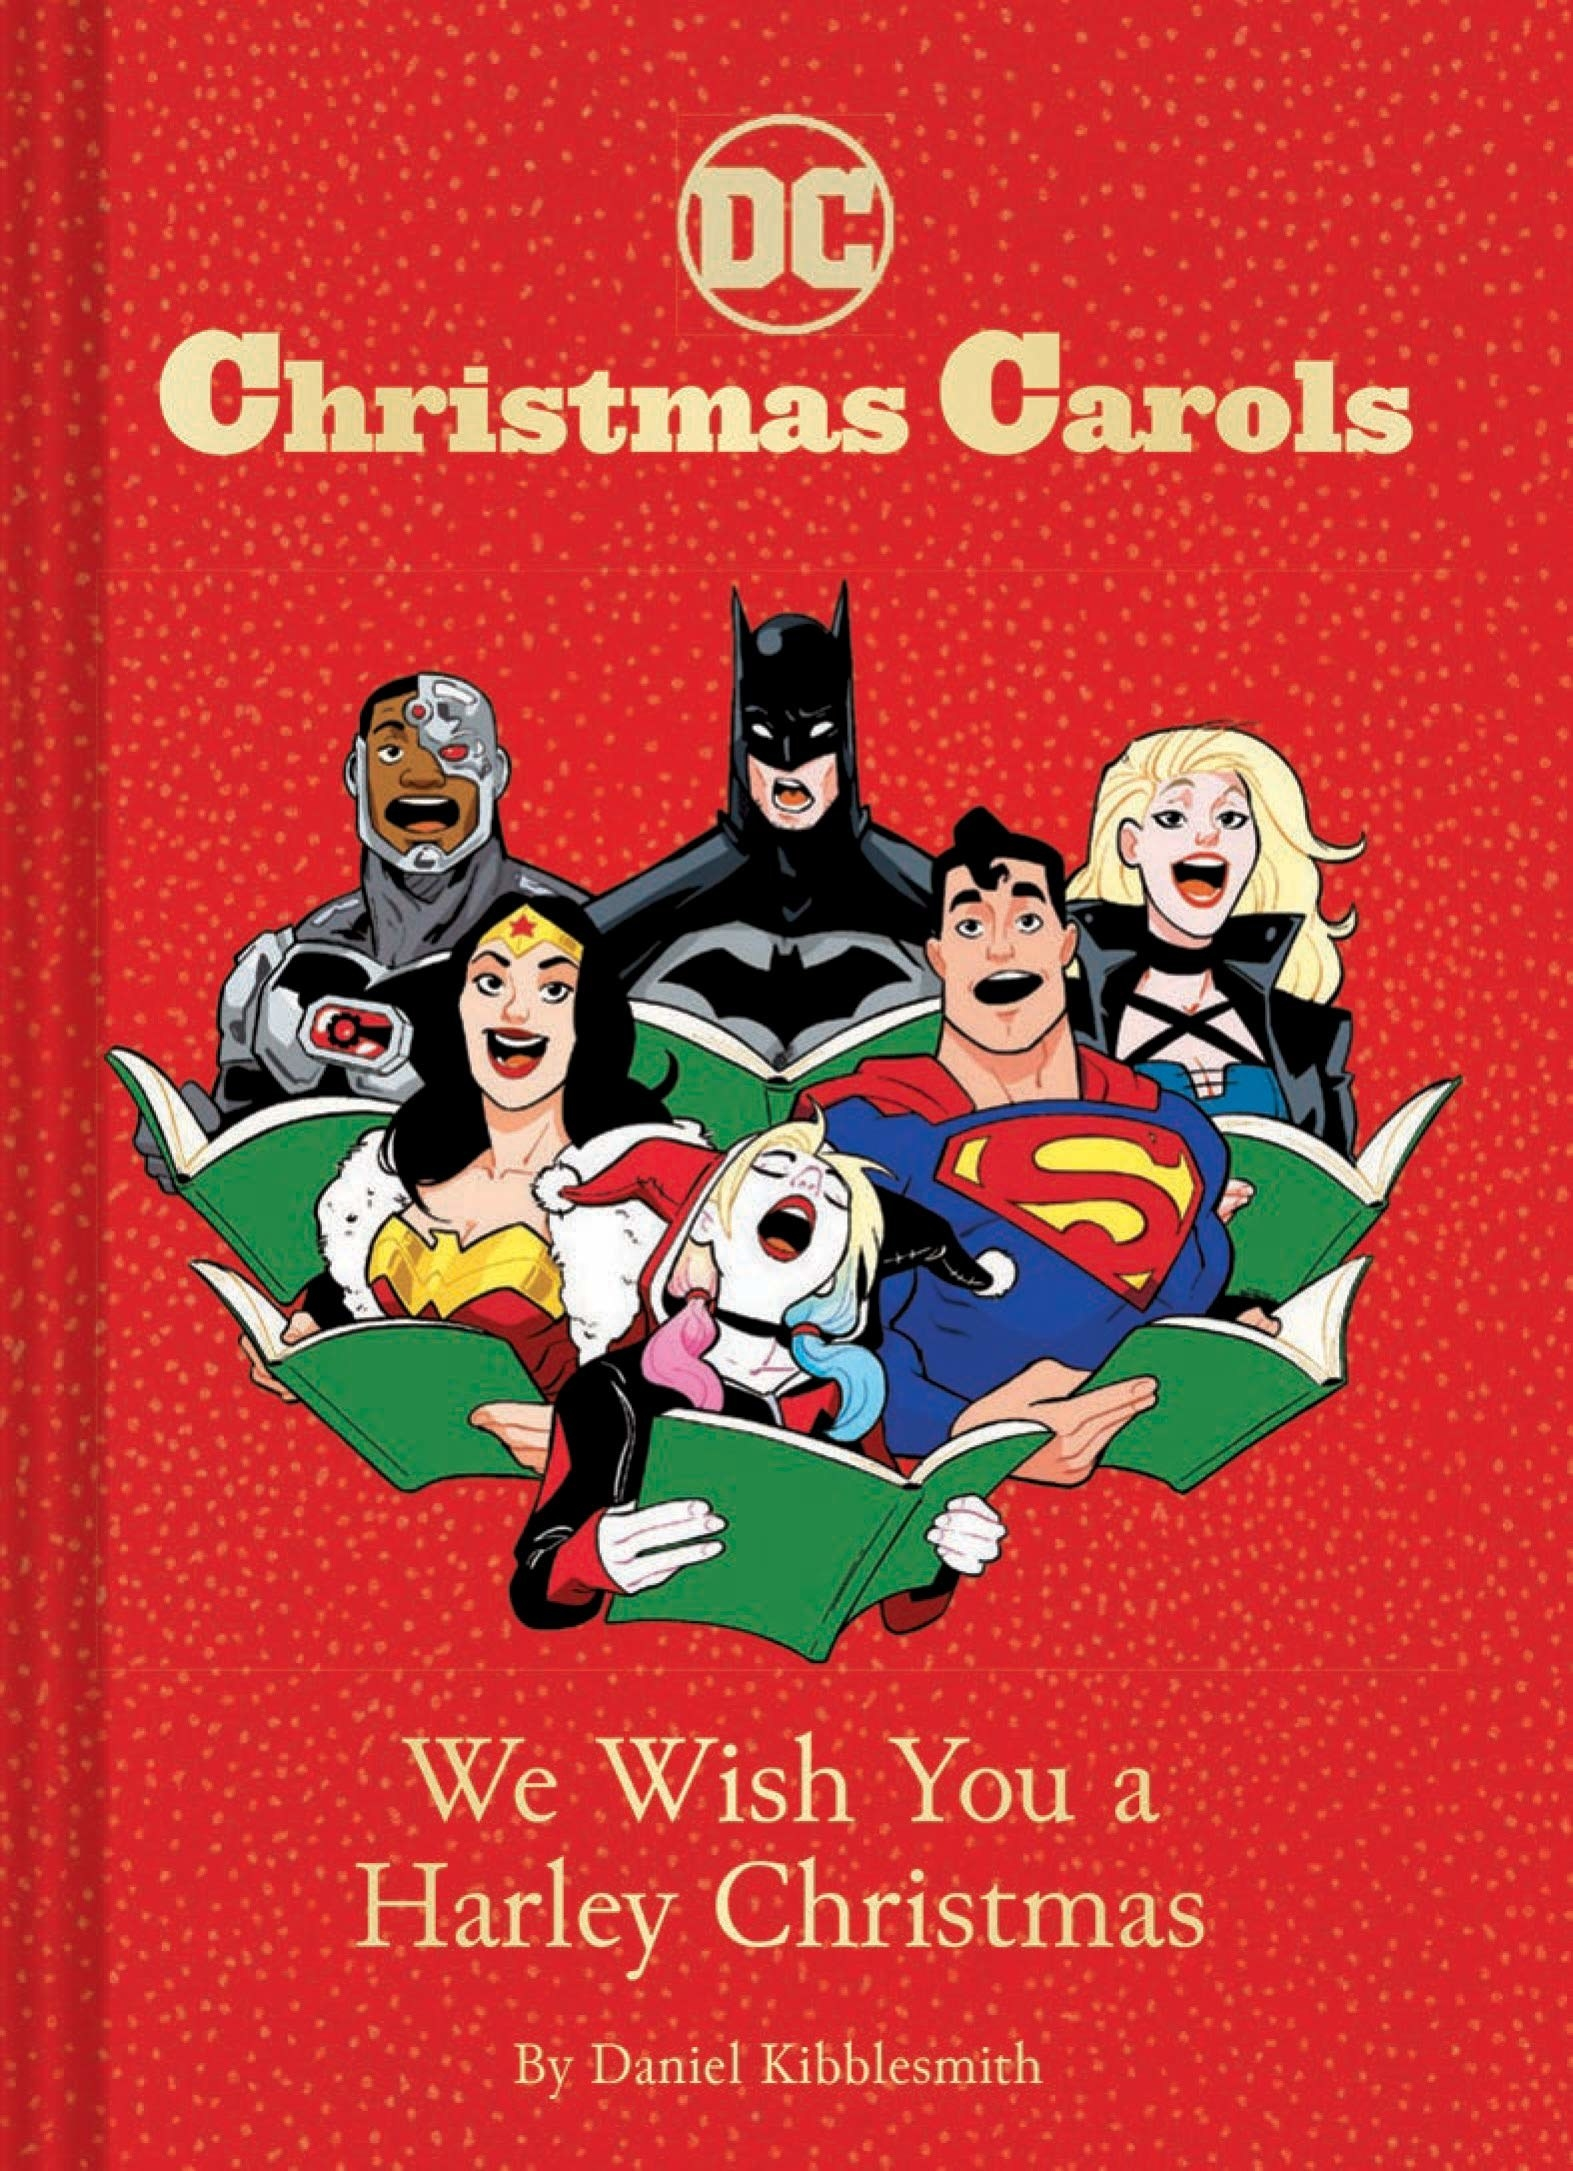 """Cover of """"DC Christmas Carols: We Wish You a Harley Christmas"""" by Daniel Kibblesmith showing a cast of DC comic book characters"""